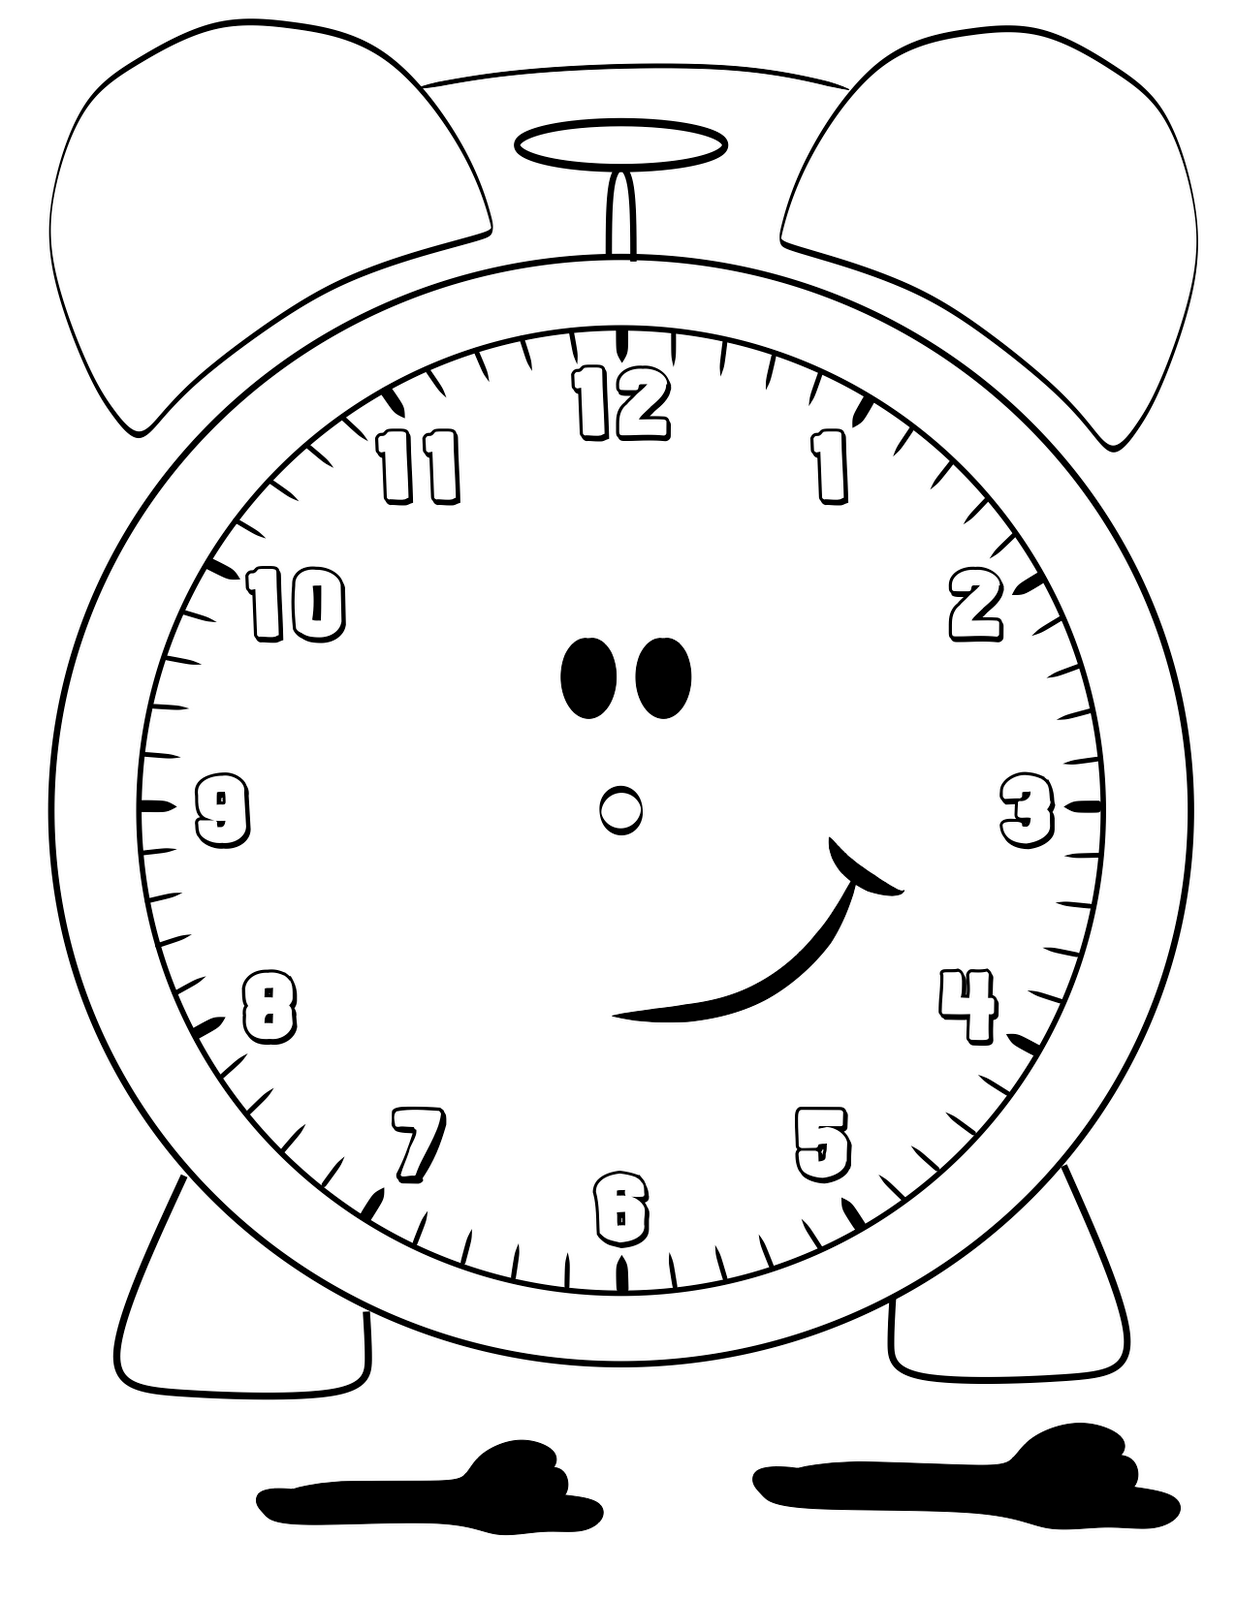 worksheet Blank Clocks Worksheet blank clock faces for exercises activity shelter kids